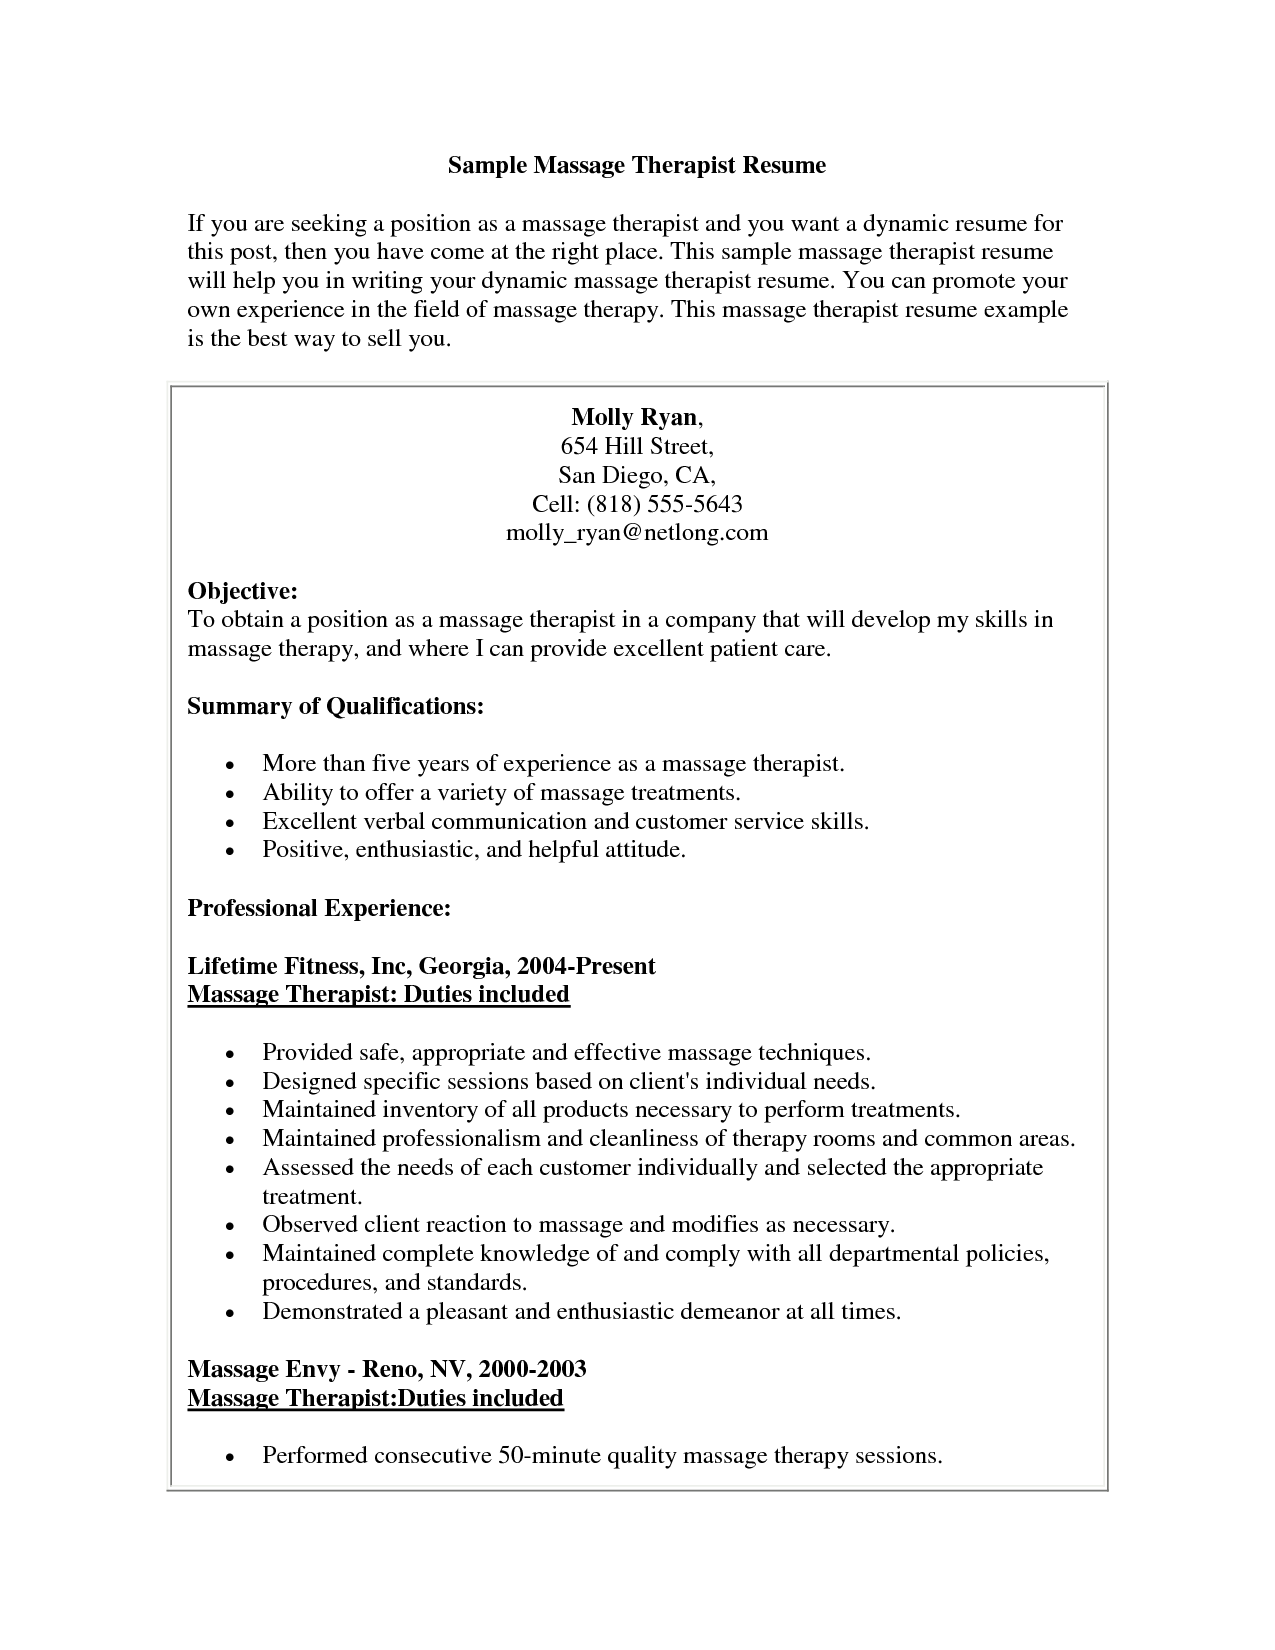 Attractive Massage Therapist Resume Sample Massage Therapist Resume Sample, Massage Therapist  Resume Objective, Massage Therapist